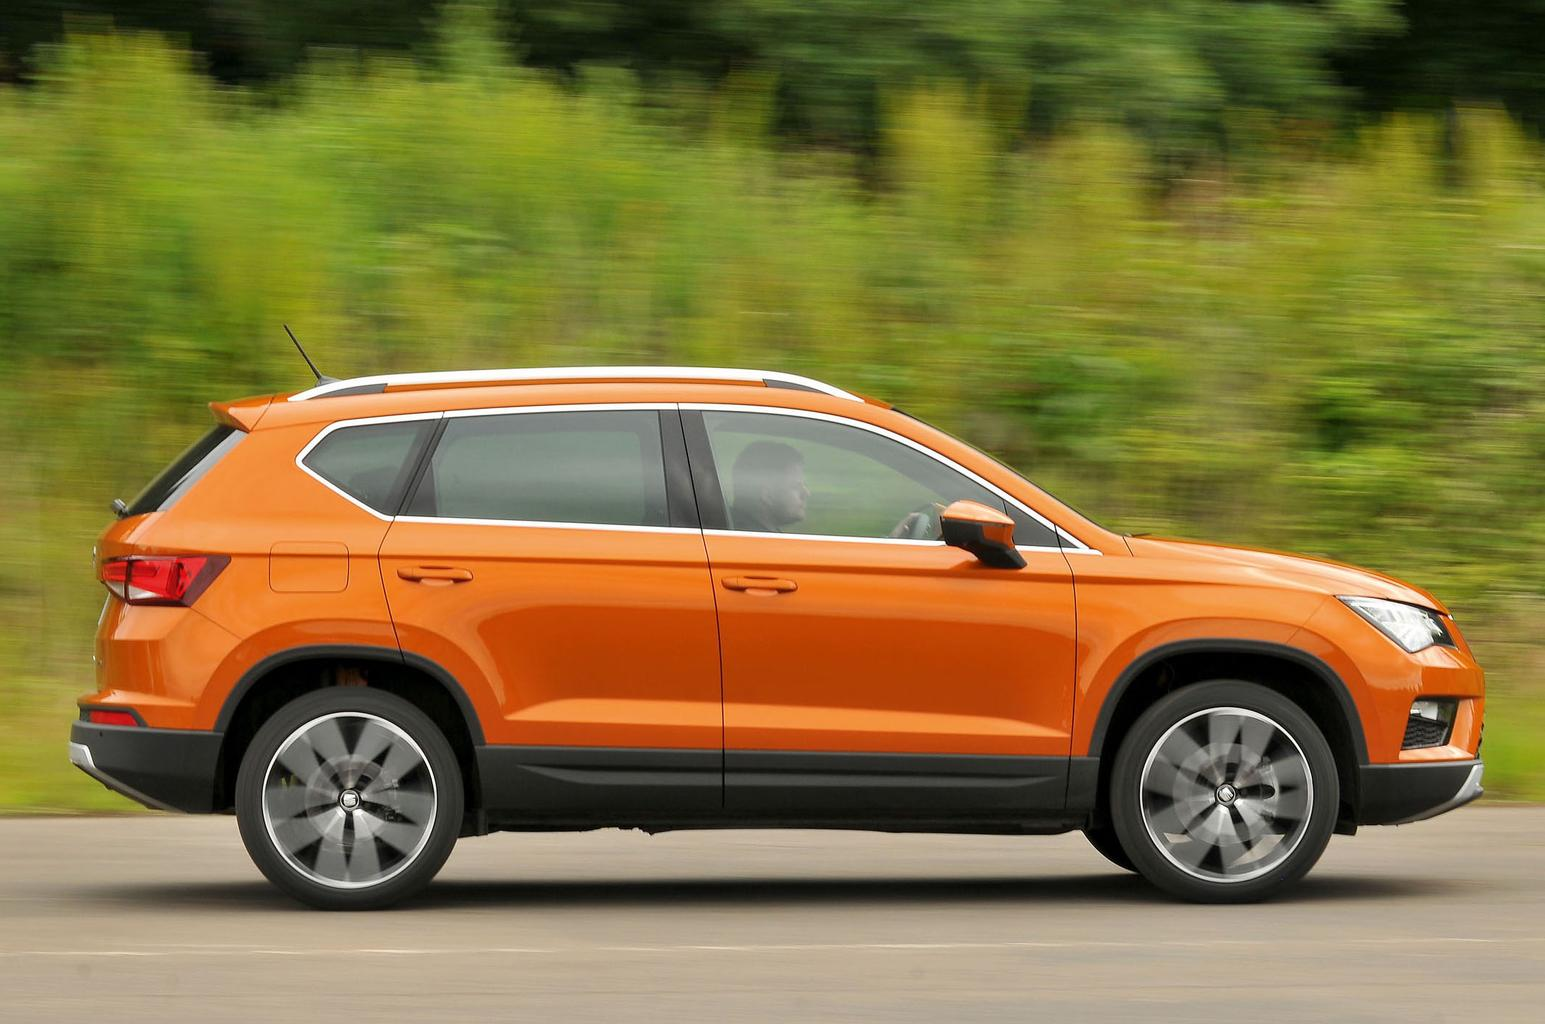 New Seat Ateca First Edition specification decided by public vote